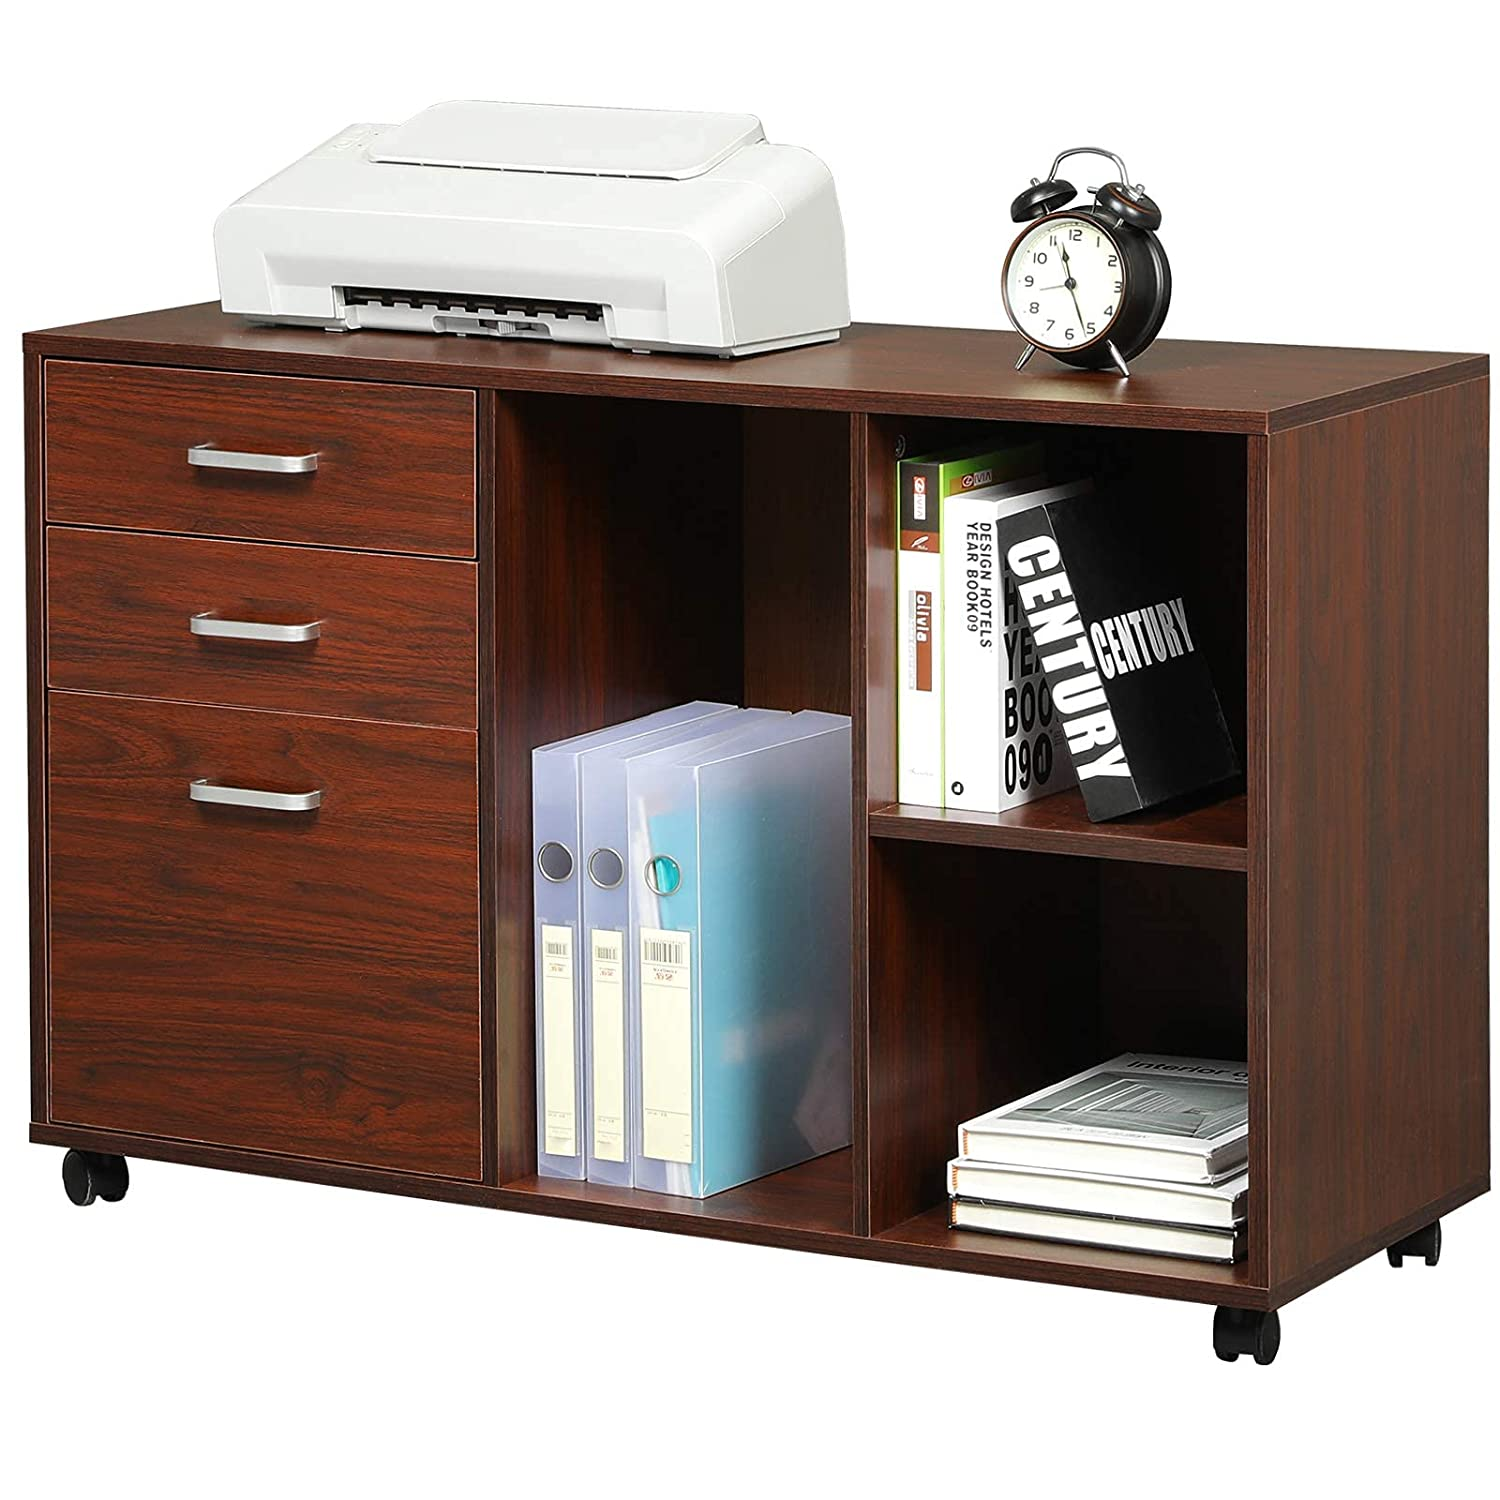 Itaar 3 Drawer Wood File Cabinet Mobile Lateral Filing Cabinet Printer Stand With Wheels Open Storage Shelves For Home Office Study Bedroom Cherry Red Amazon In Office Products